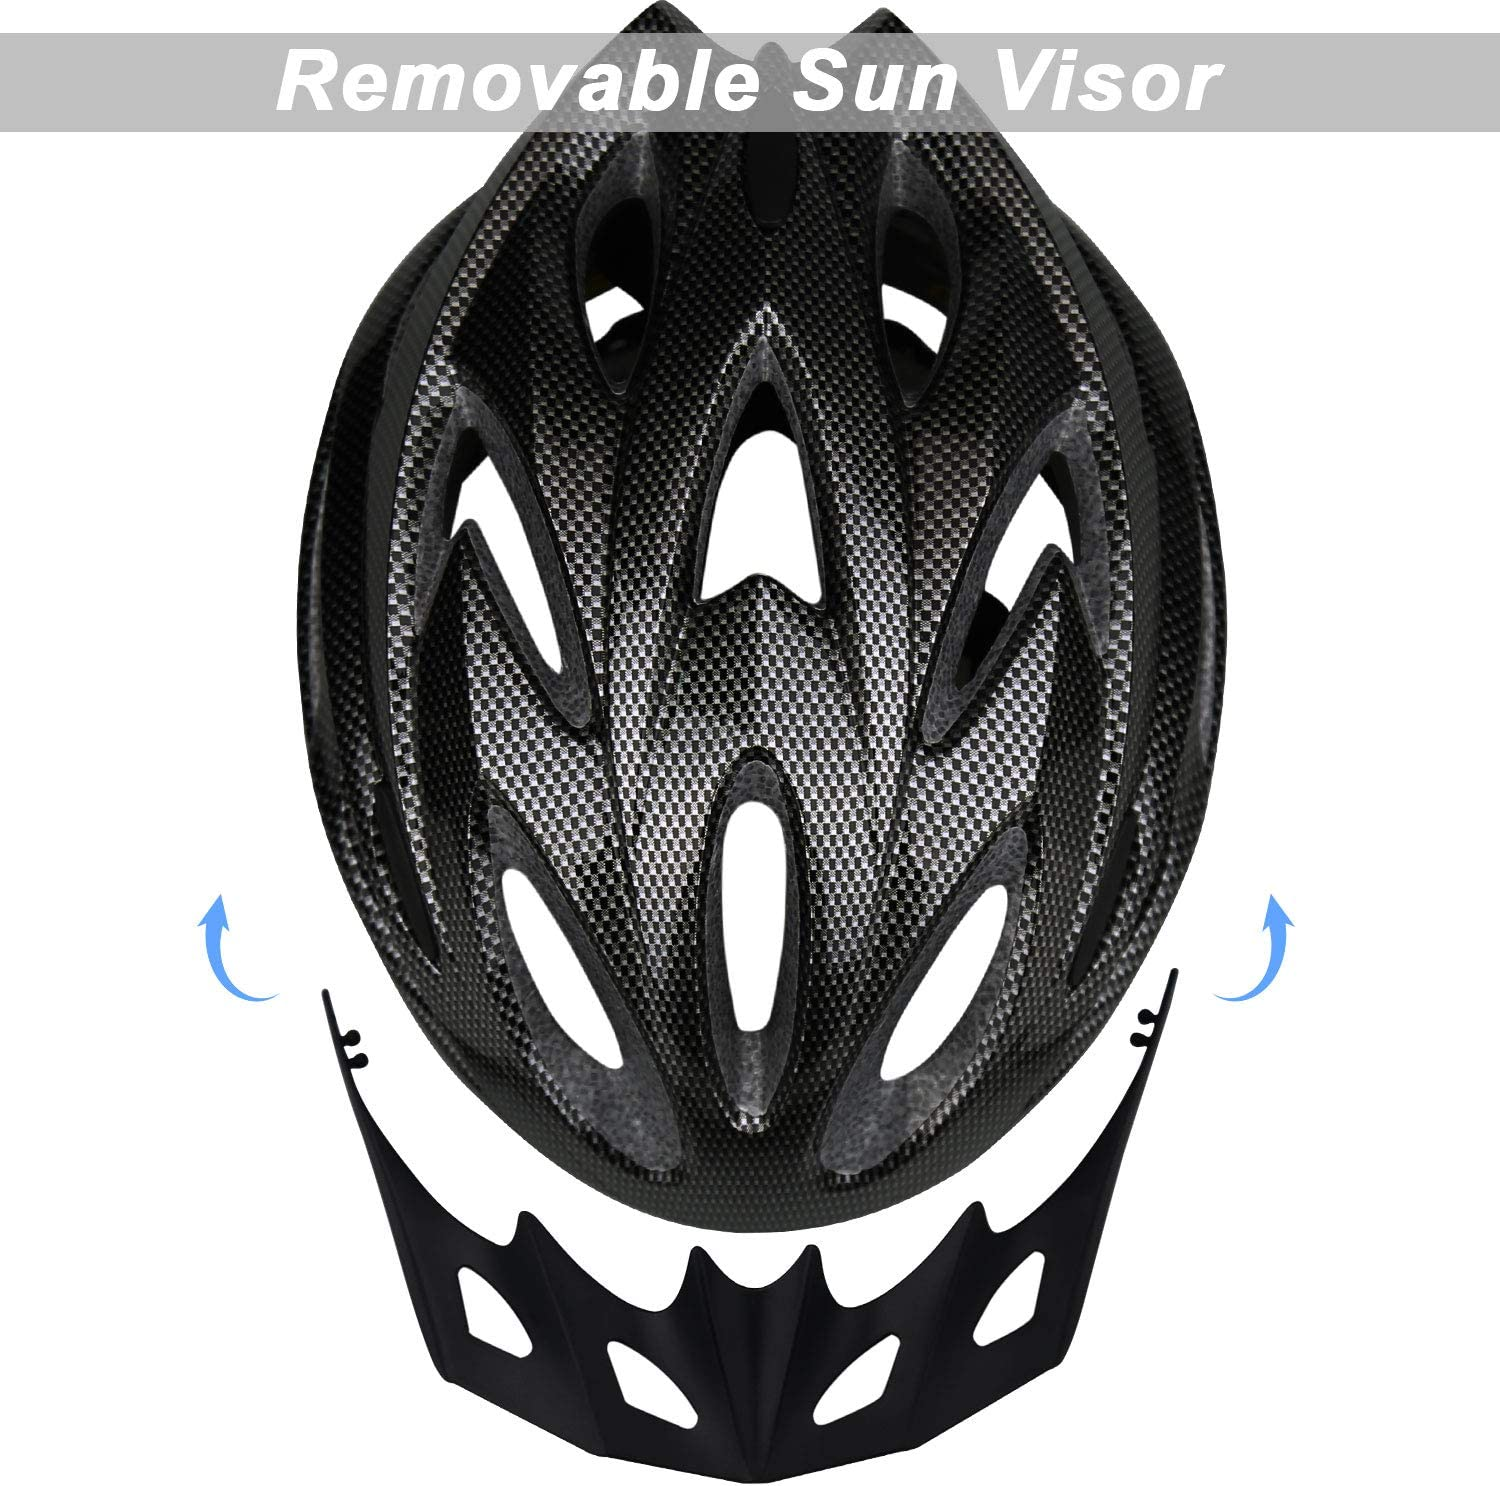 iWUNTONG Adult Bike Helmet Bicycle Helmet with Detachable Visor,Specialized Road Helmet for Mens Womens with Adjustable Size,Climbing Lightweight Helmet Cycling Helmet with CPSC//CE Certified